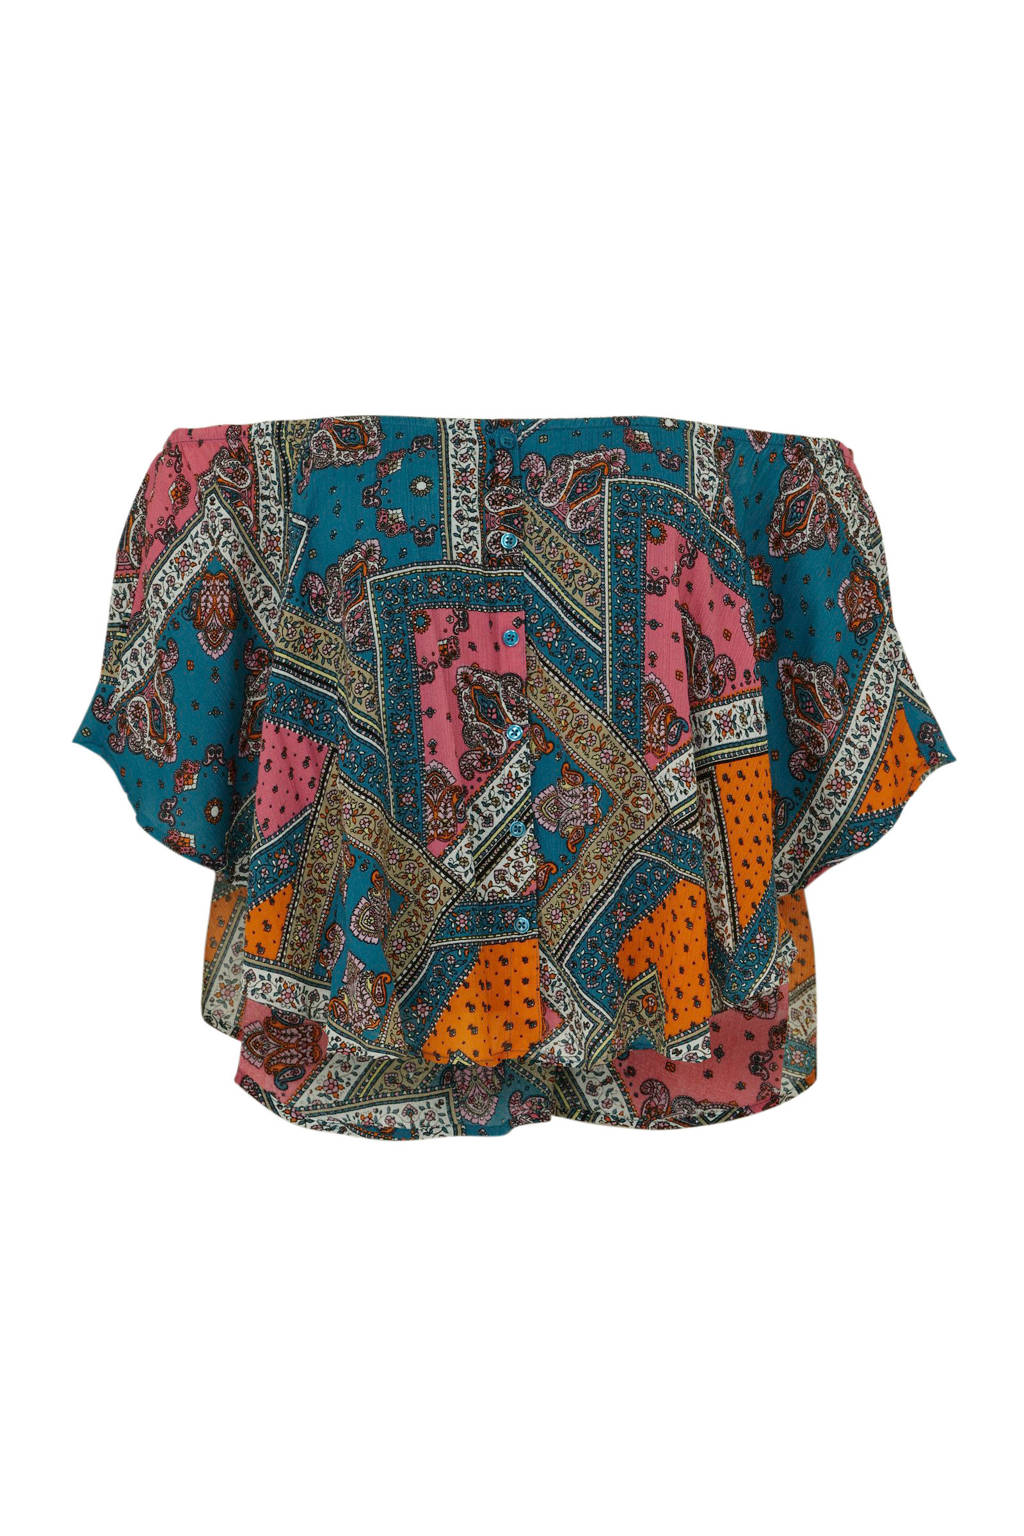 C&A XL Clockhouse off shoulder top met paisleyprint blauw multi, Blauw multi